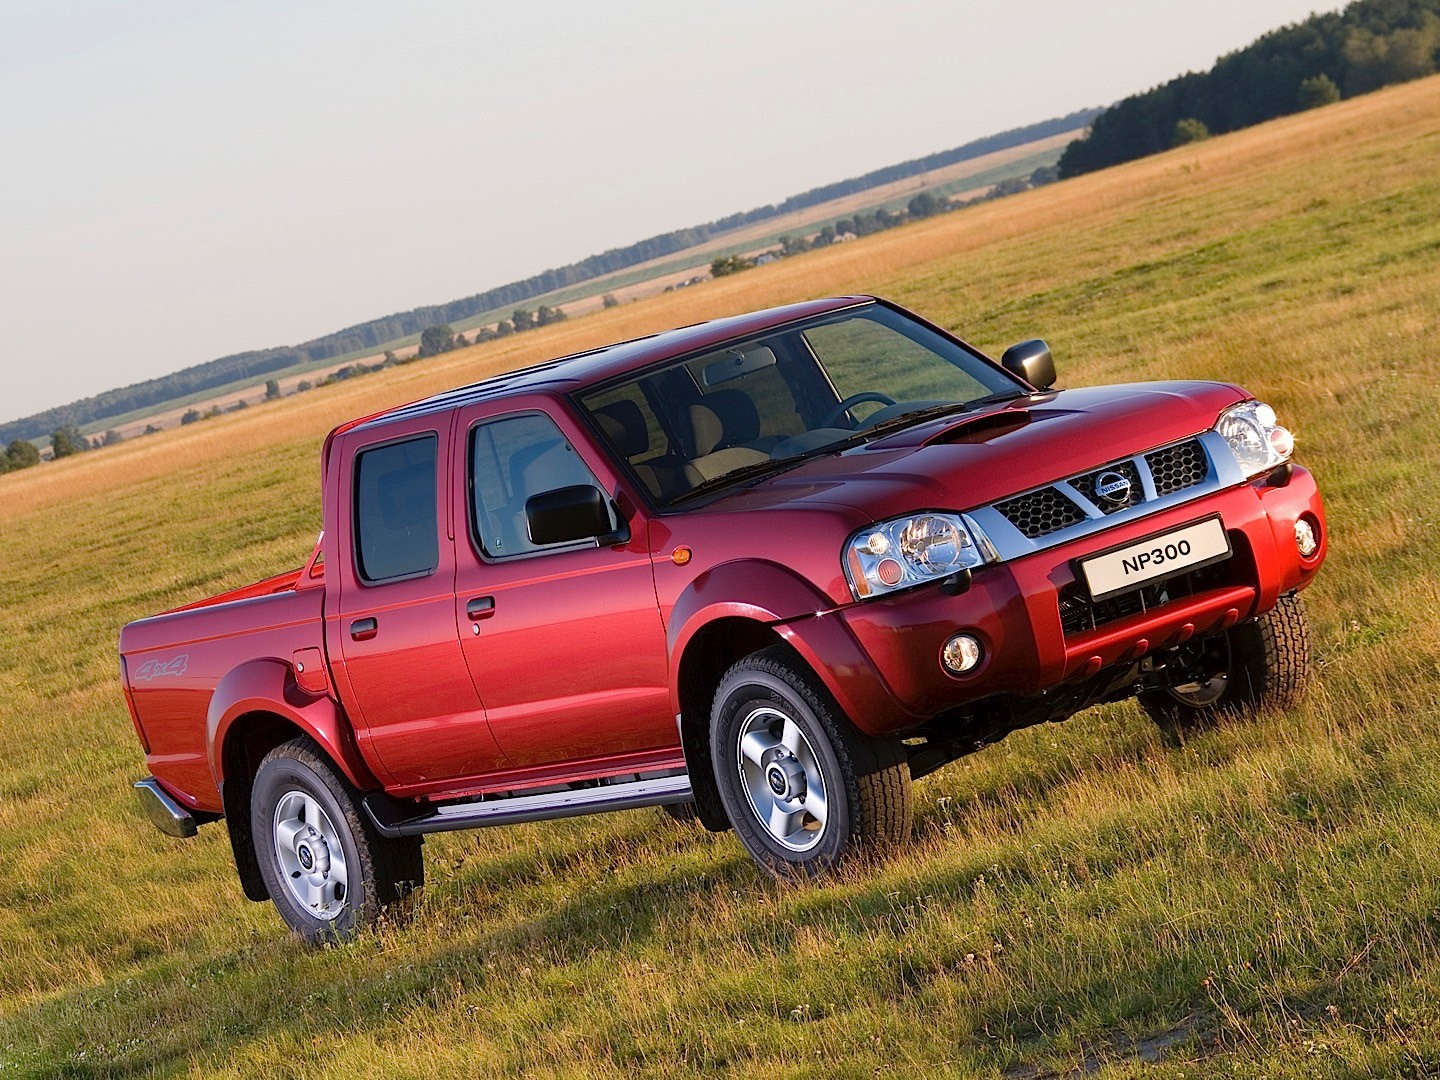 nissan np300 pickup double cab specs - 2008  2009  2010  2011  2012  2013  2014